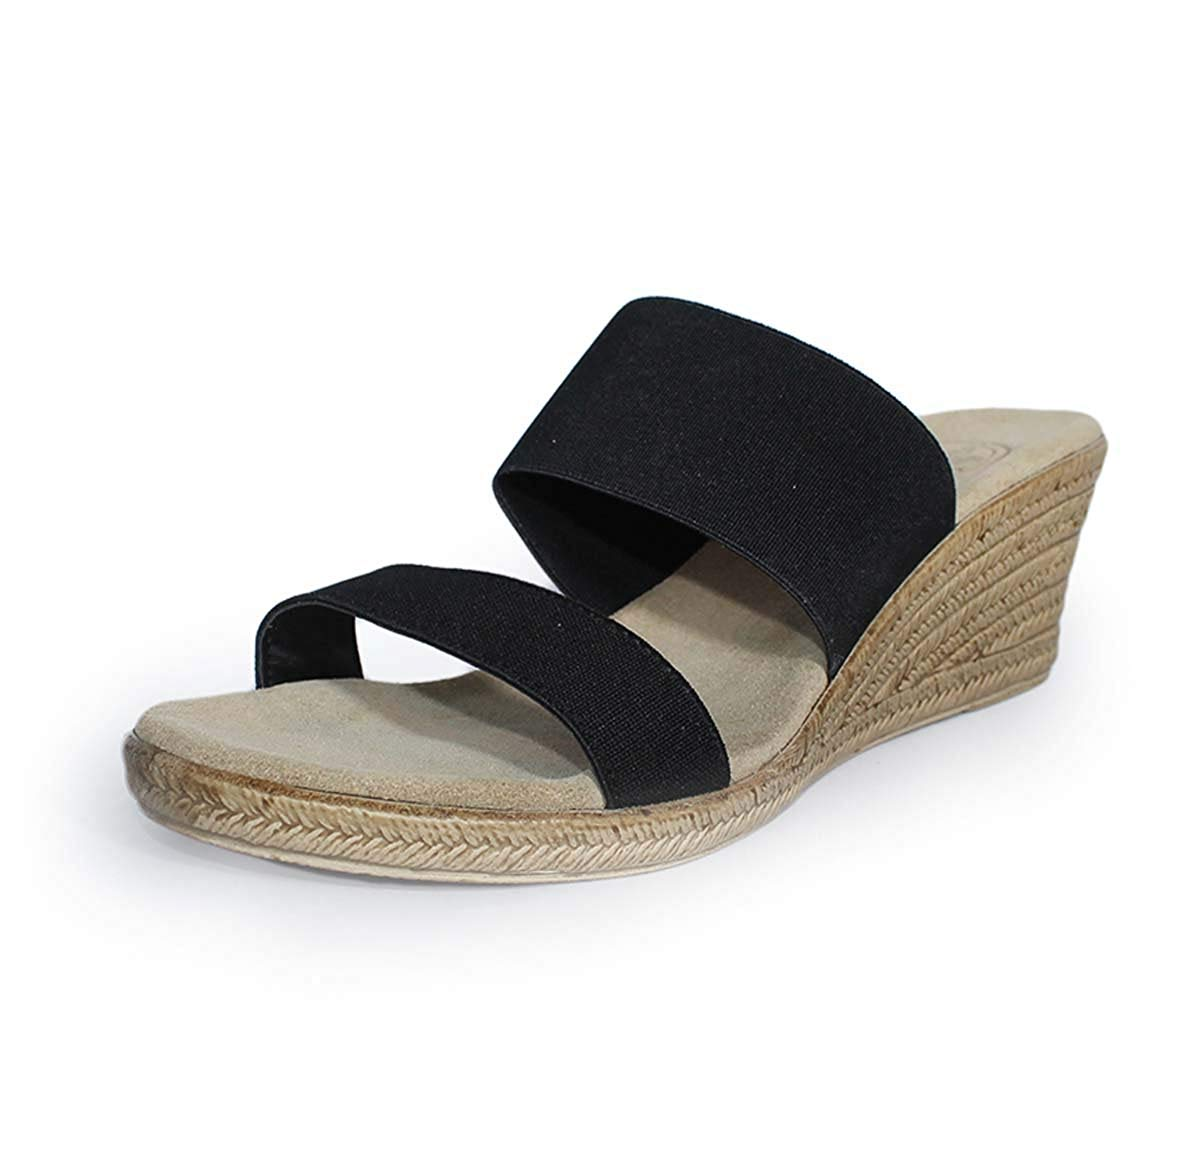 b95ec6e384e Get Quotations · Backless Cooper Espadrille Wedge Sandal by Charleston Shoe  Co.